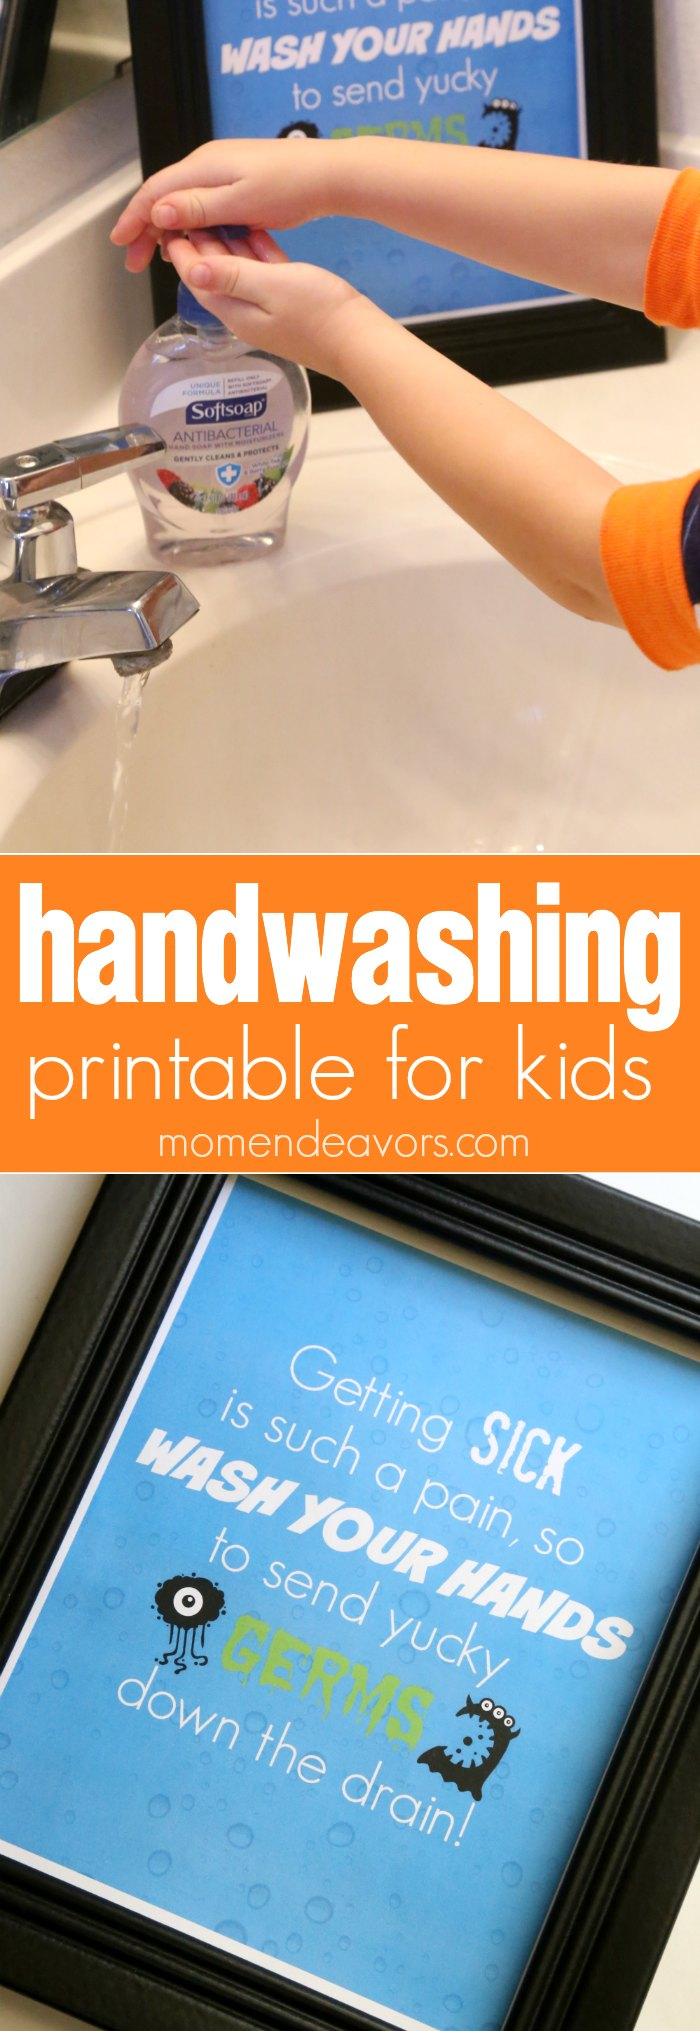 handwashing-printable-for-kids